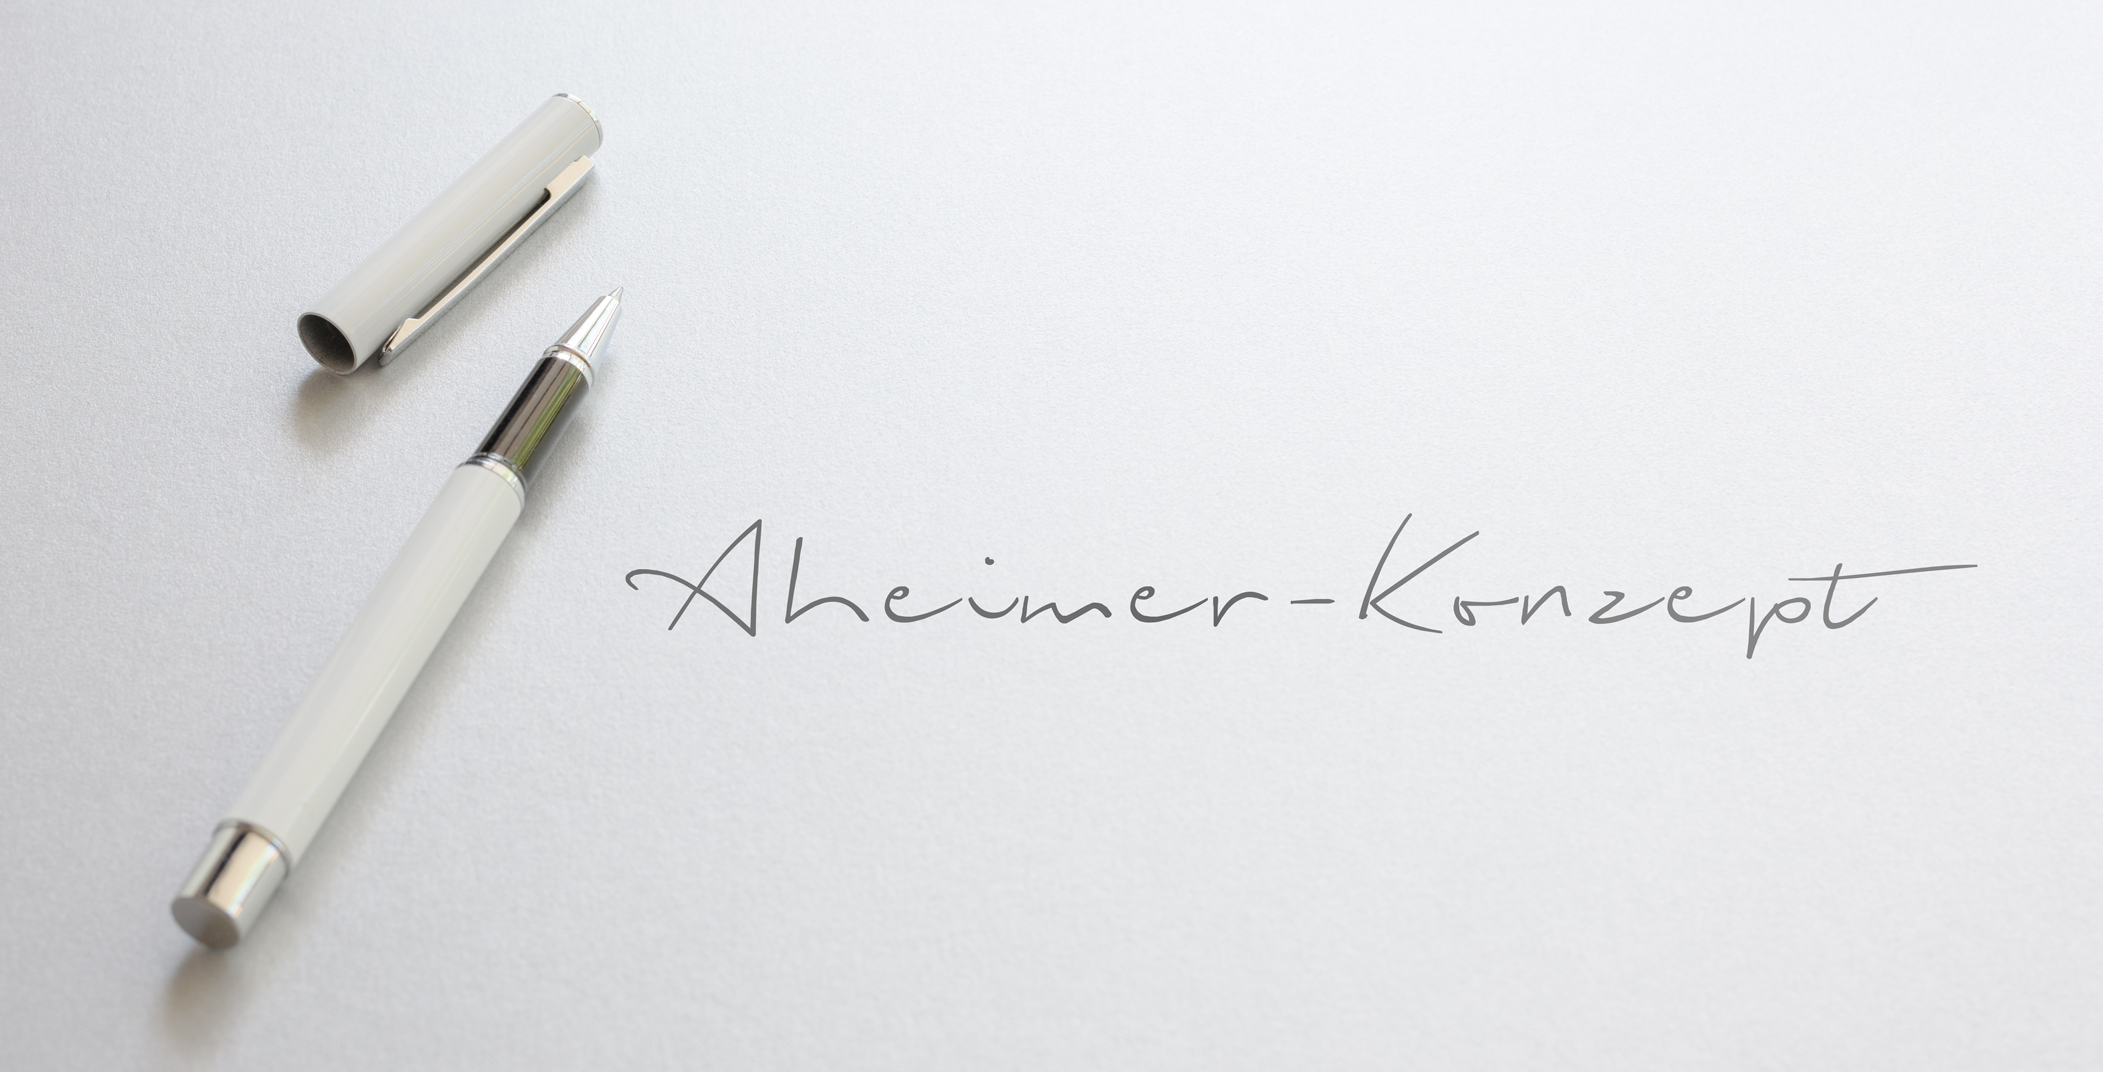 Praxismarketing by Onelio Werbeagentur: Corporate Design für Aheimer-Konzept